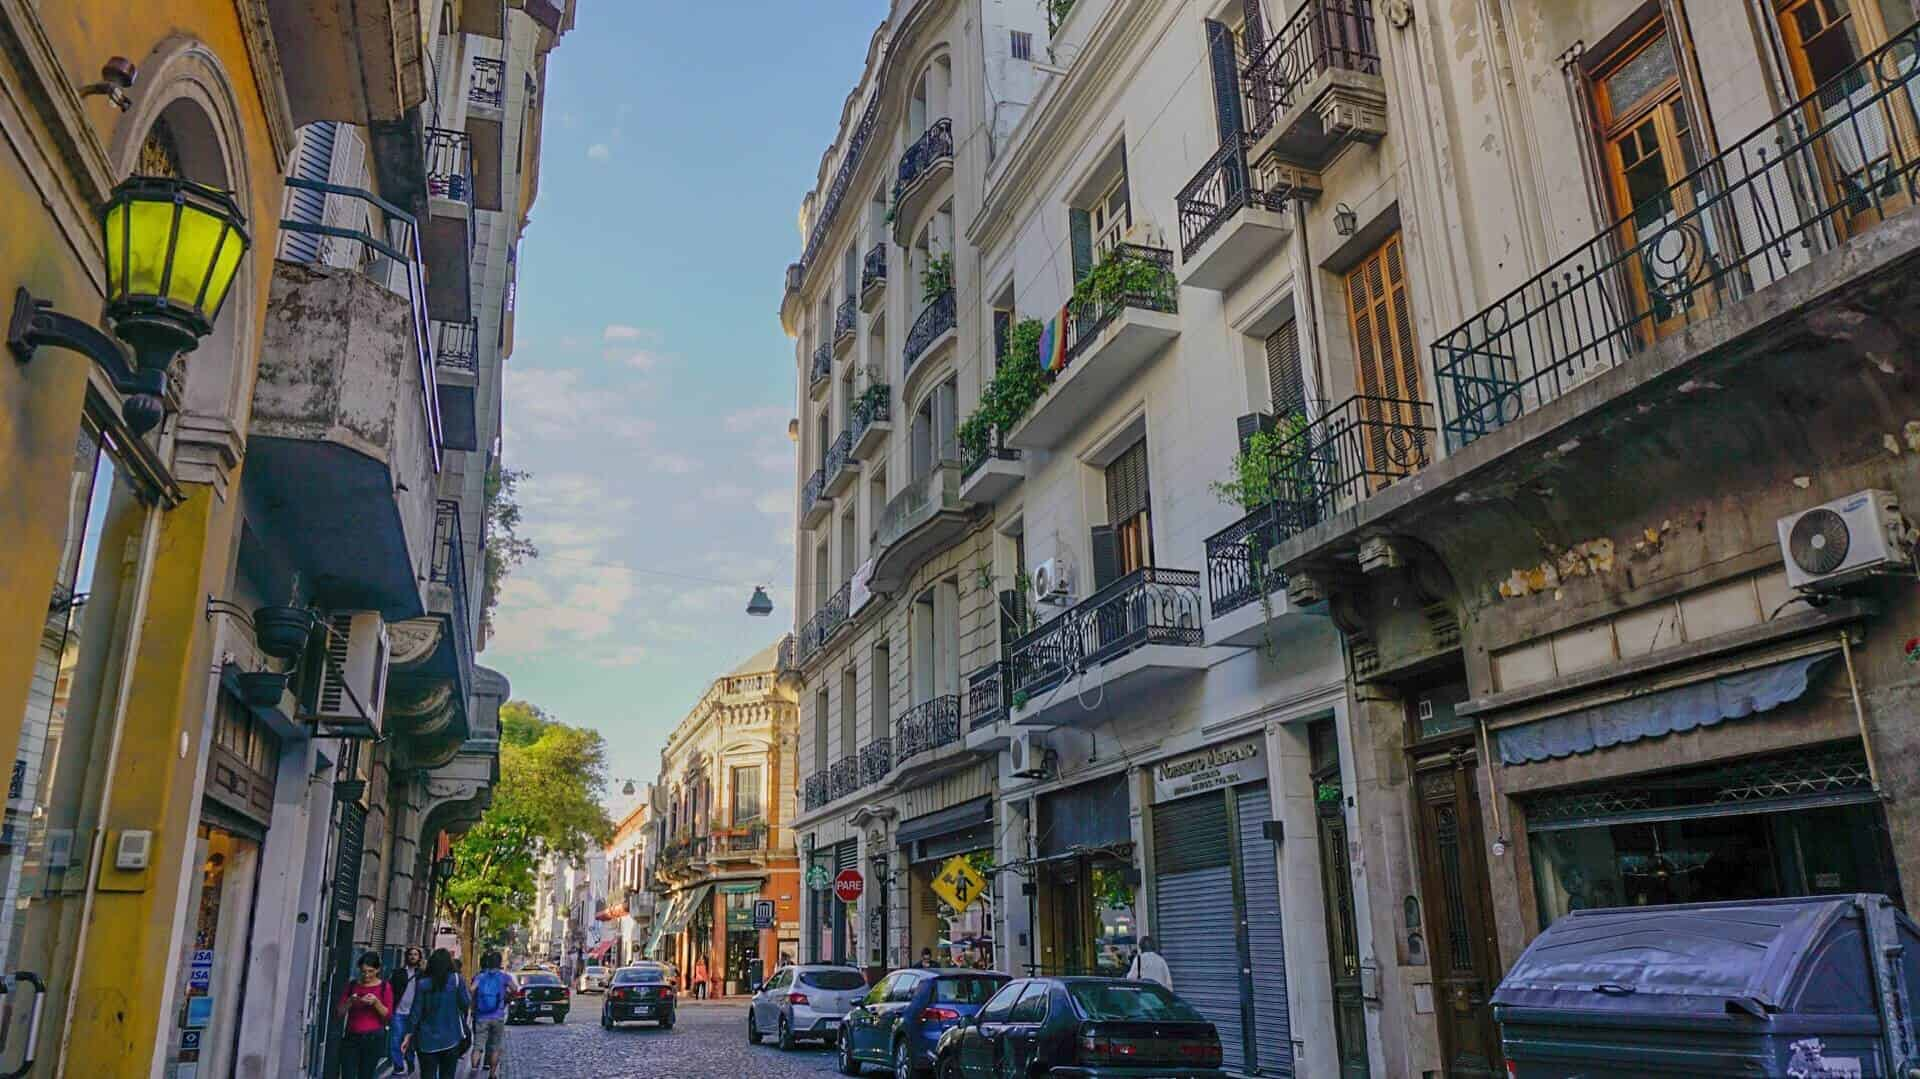 San Telmo, one of the many neighbourhoods of Buenos Aires